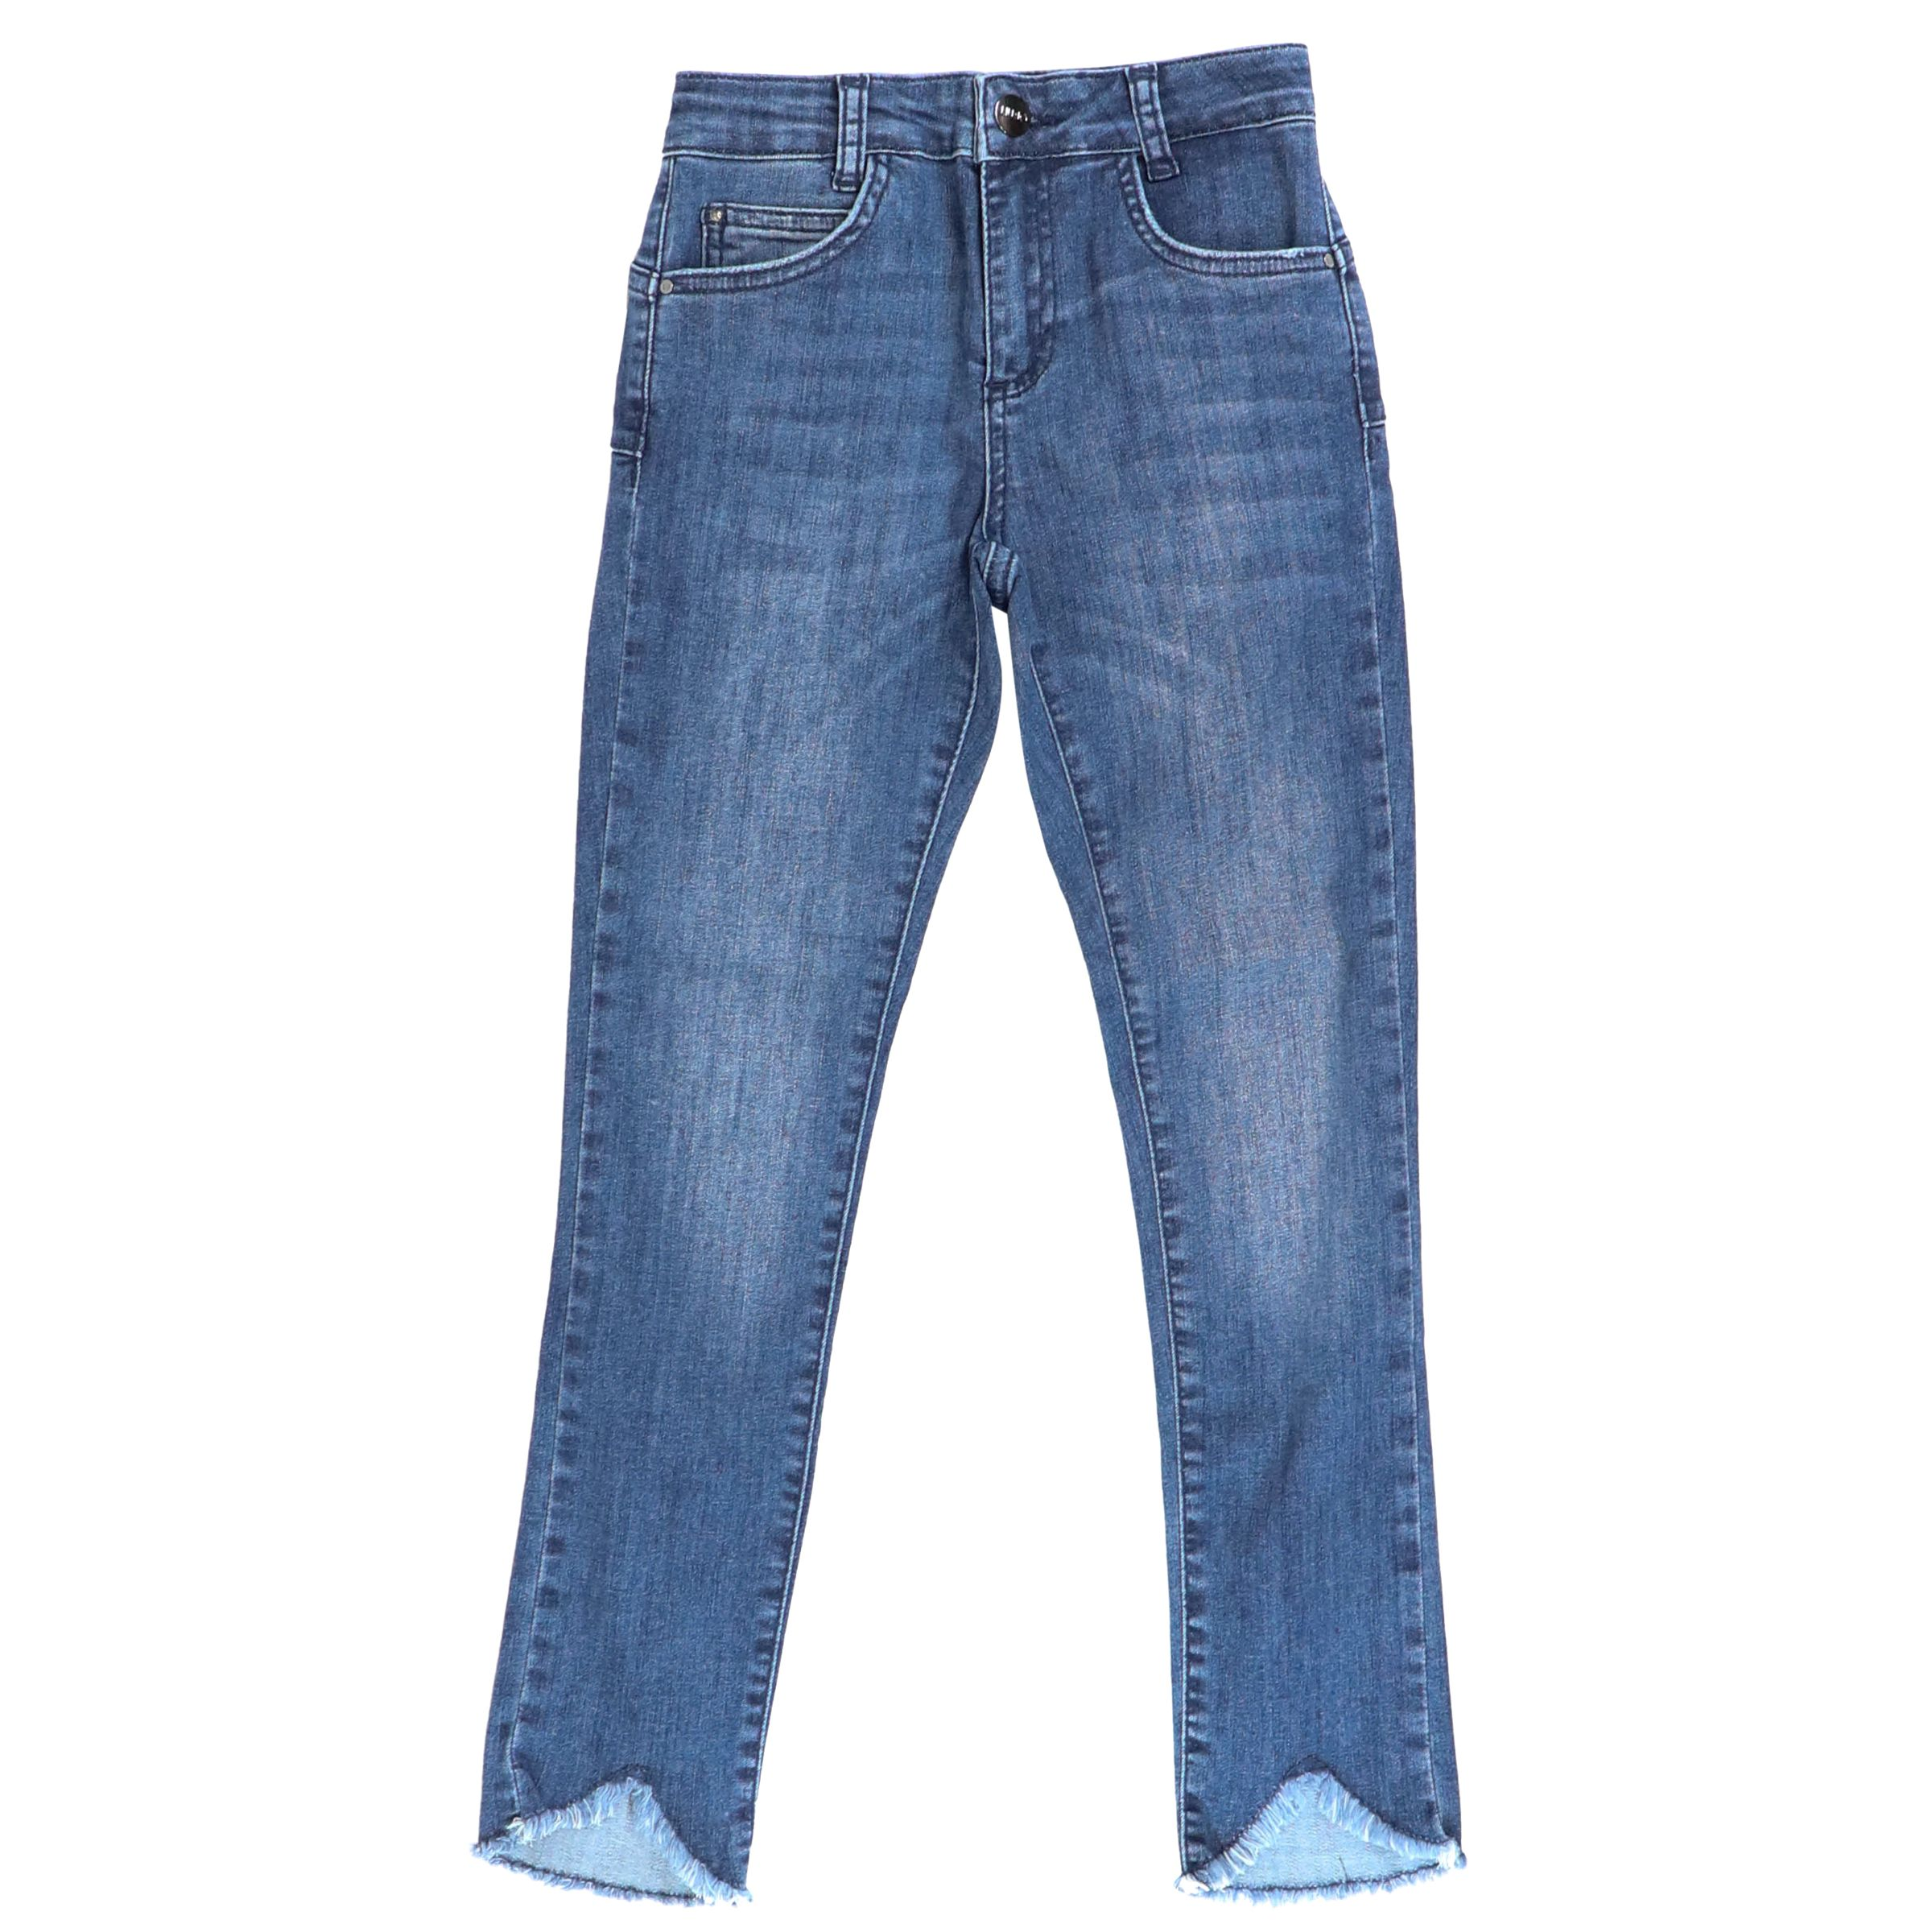 san francisco 6277f b5623 Worn-effect jeans with breaks and fringe on the bottom